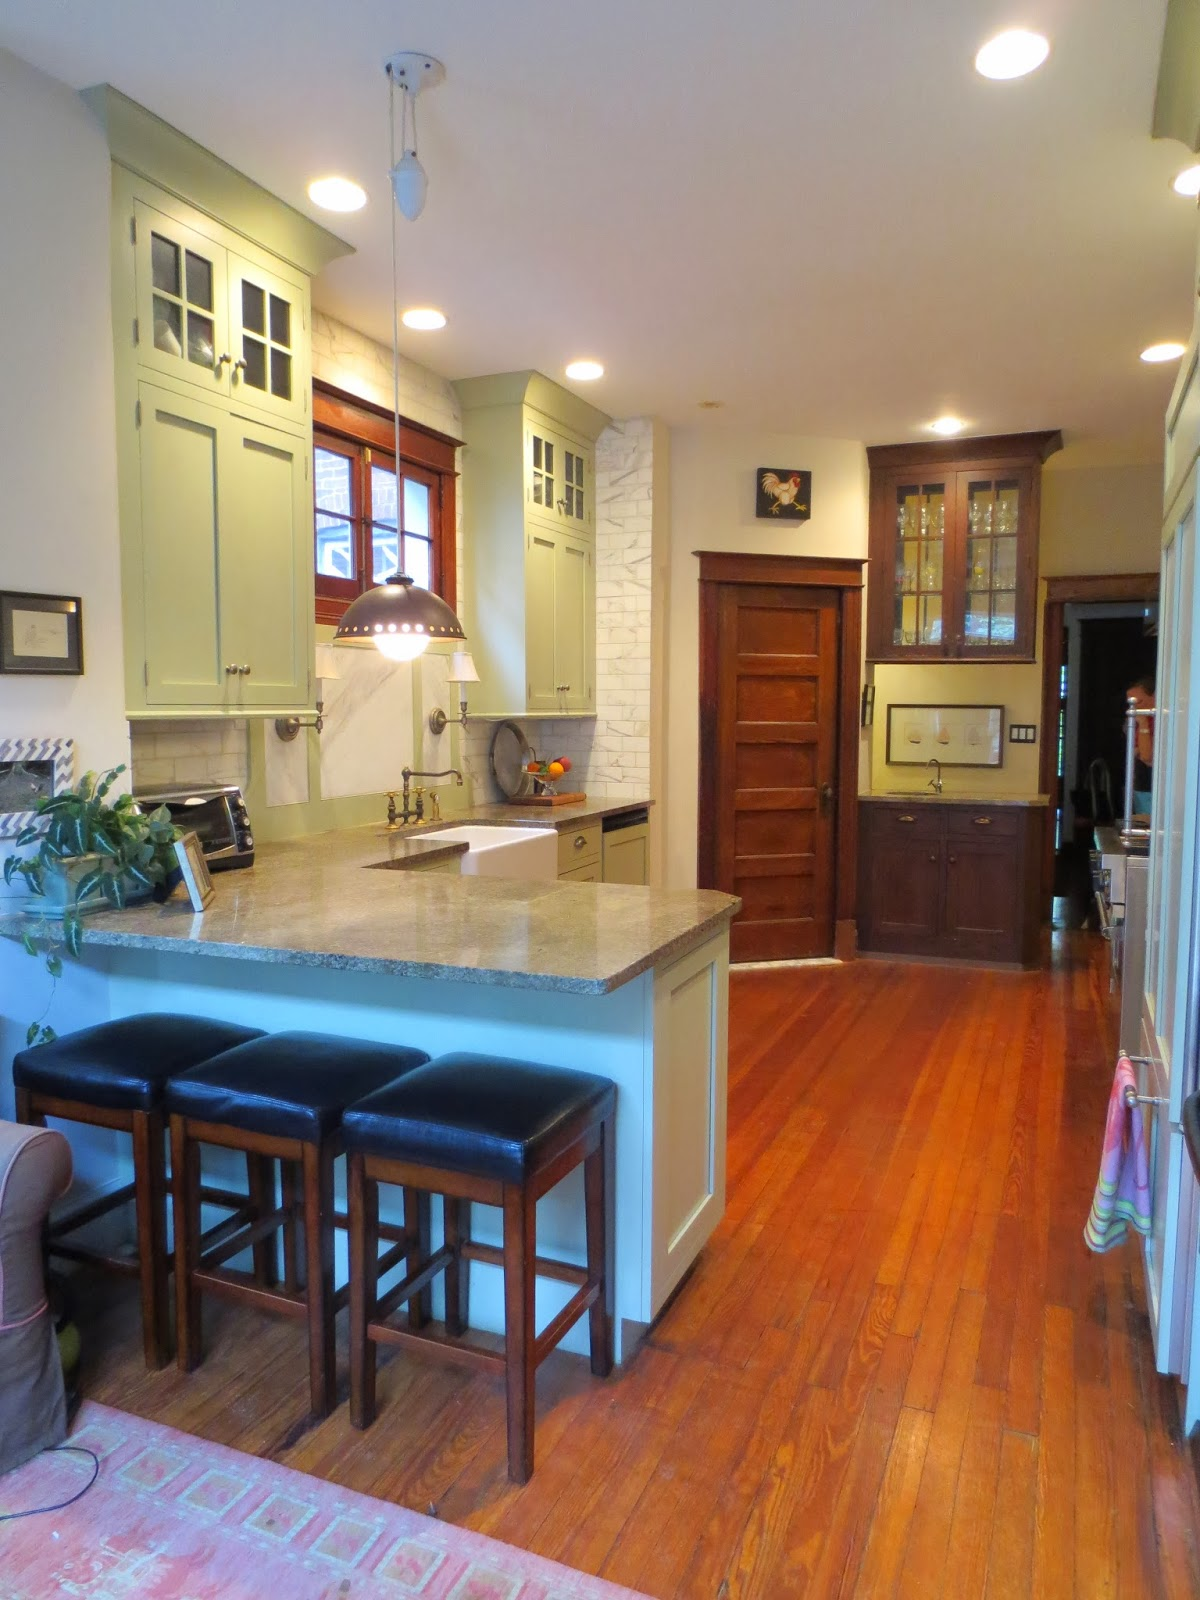 Row House Refuge Timeless Kitchen Design Part - Timeless kitchen design